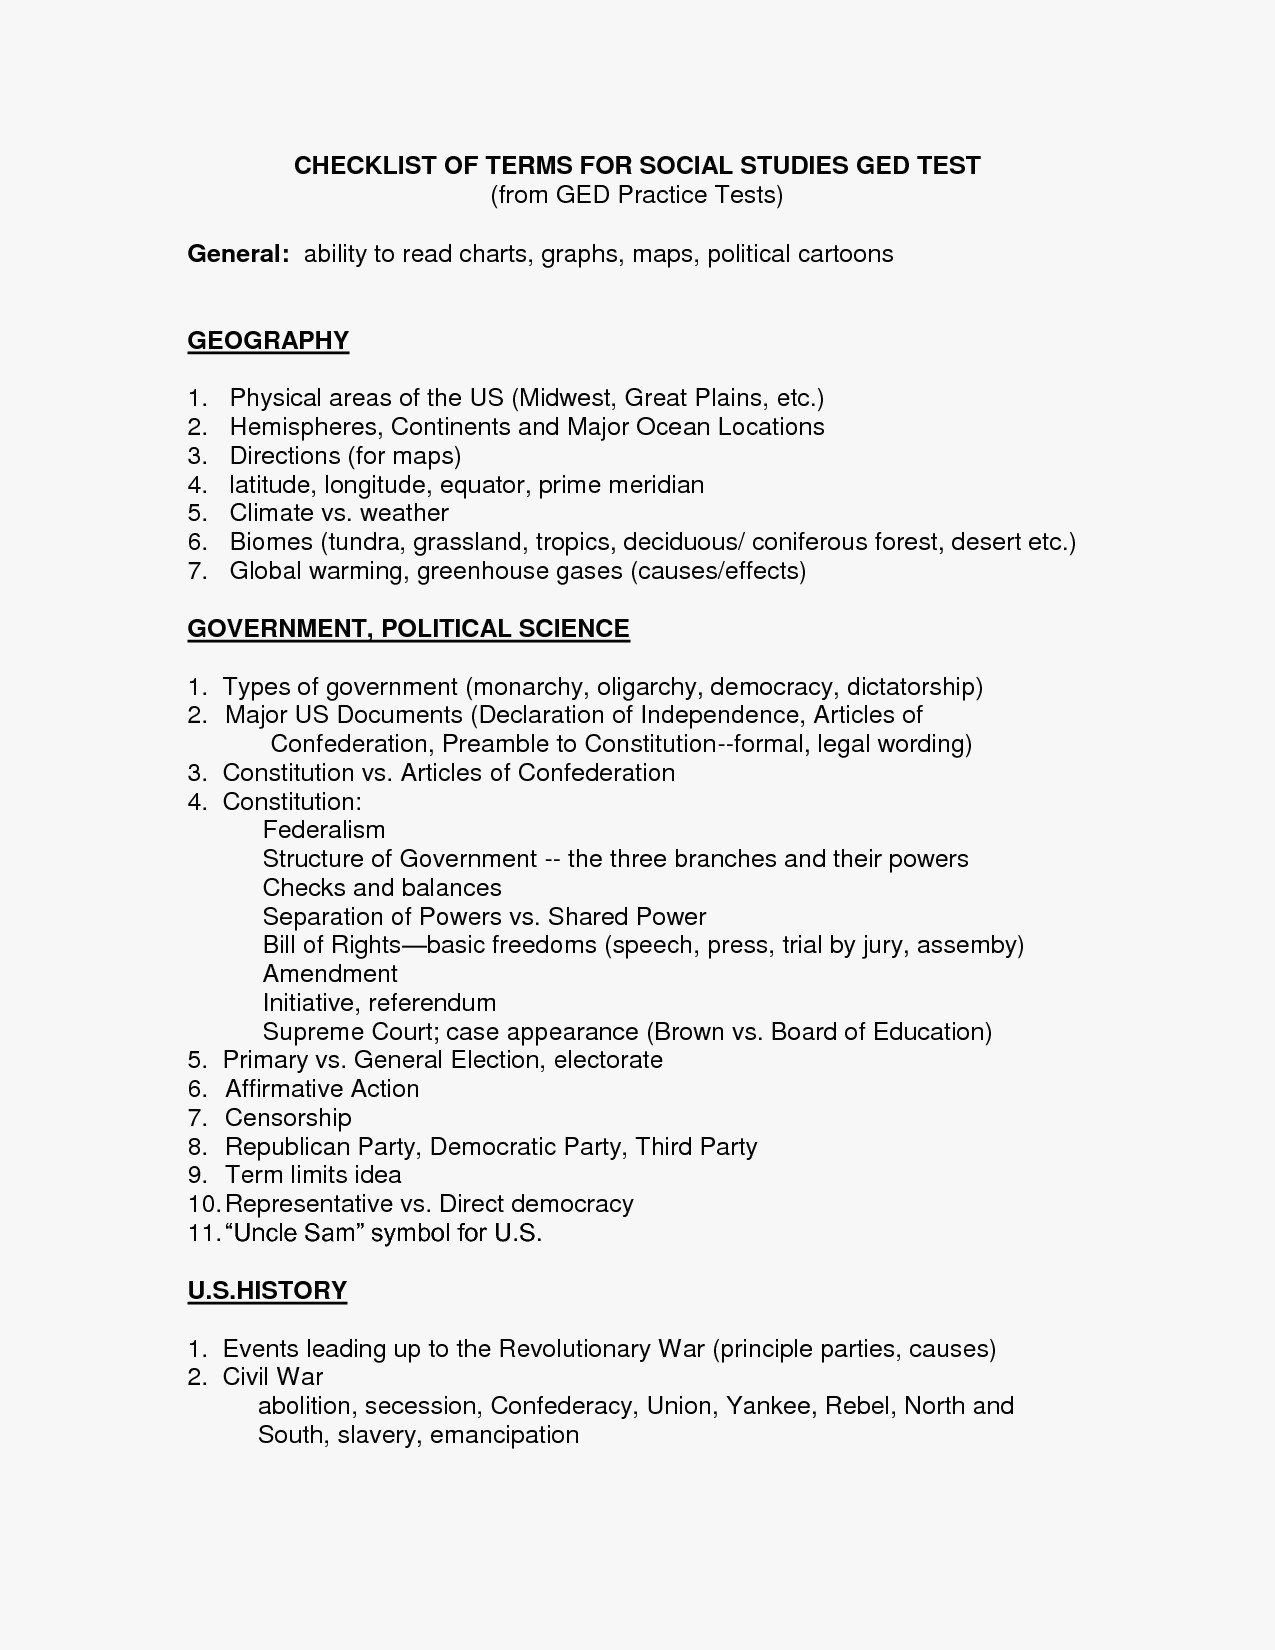 Free Printable Ged Math Worksheets Ged Tasc Class - Classy World   Printable Ged Science Practice Worksheets